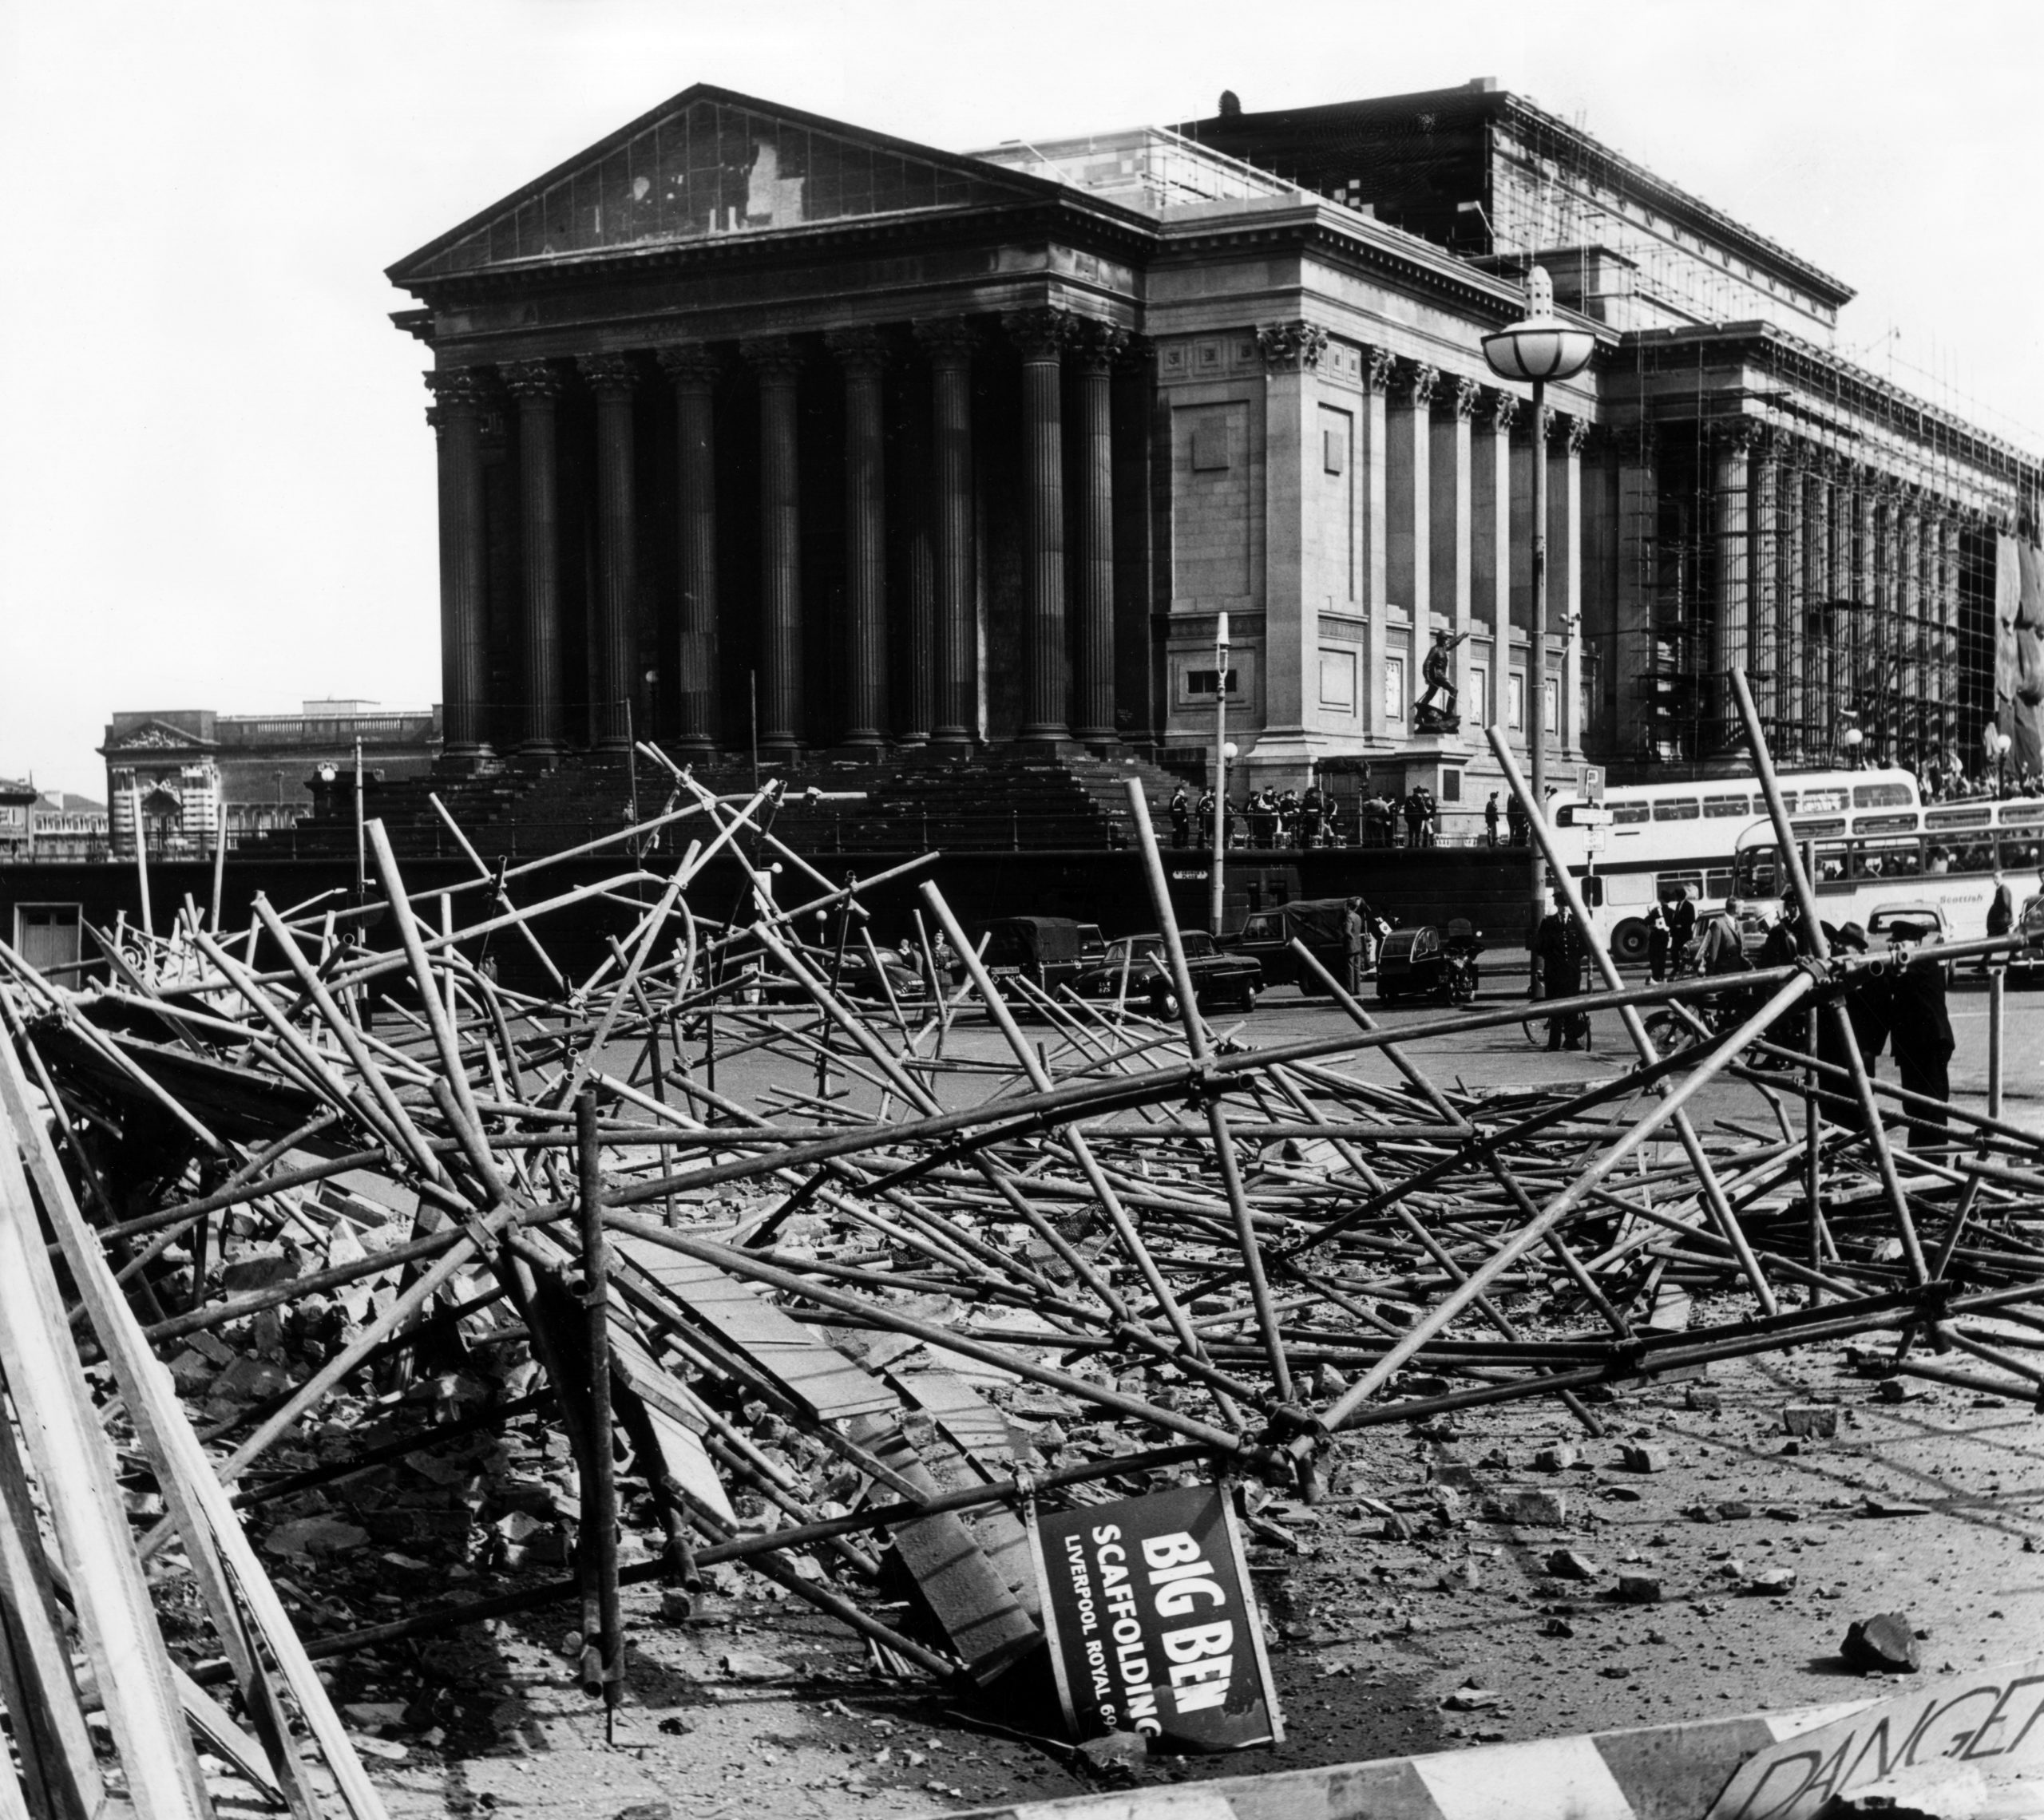 St George's Hall, Lime Street - Then